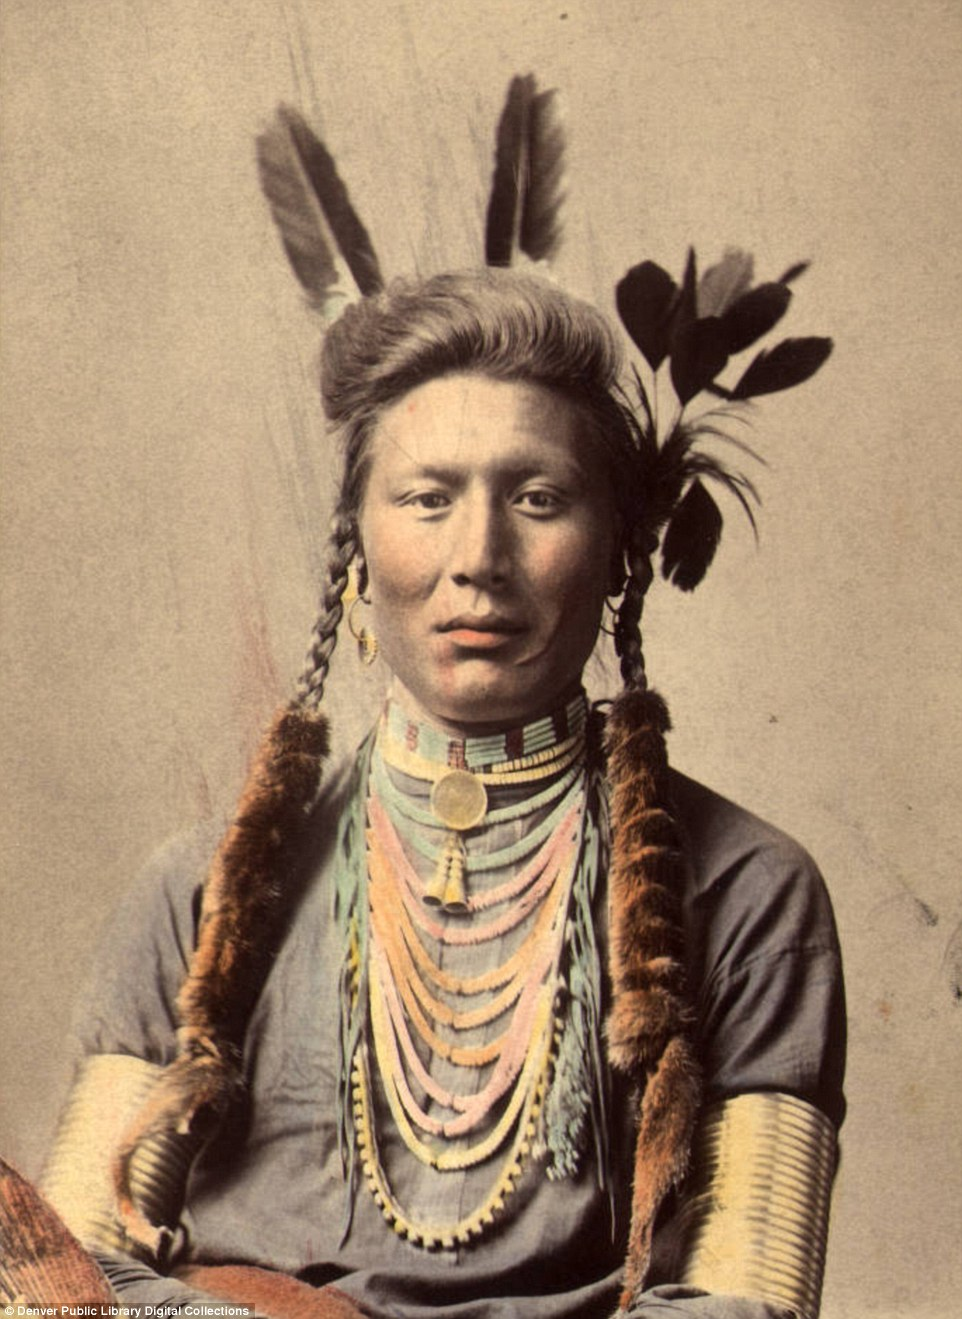 Posing camera stunning colored images lives Native Americans 19th century tribal chiefs dancers medicine men native american wedding dress History Old Coyote also known as Yellow Dog of the Crow or